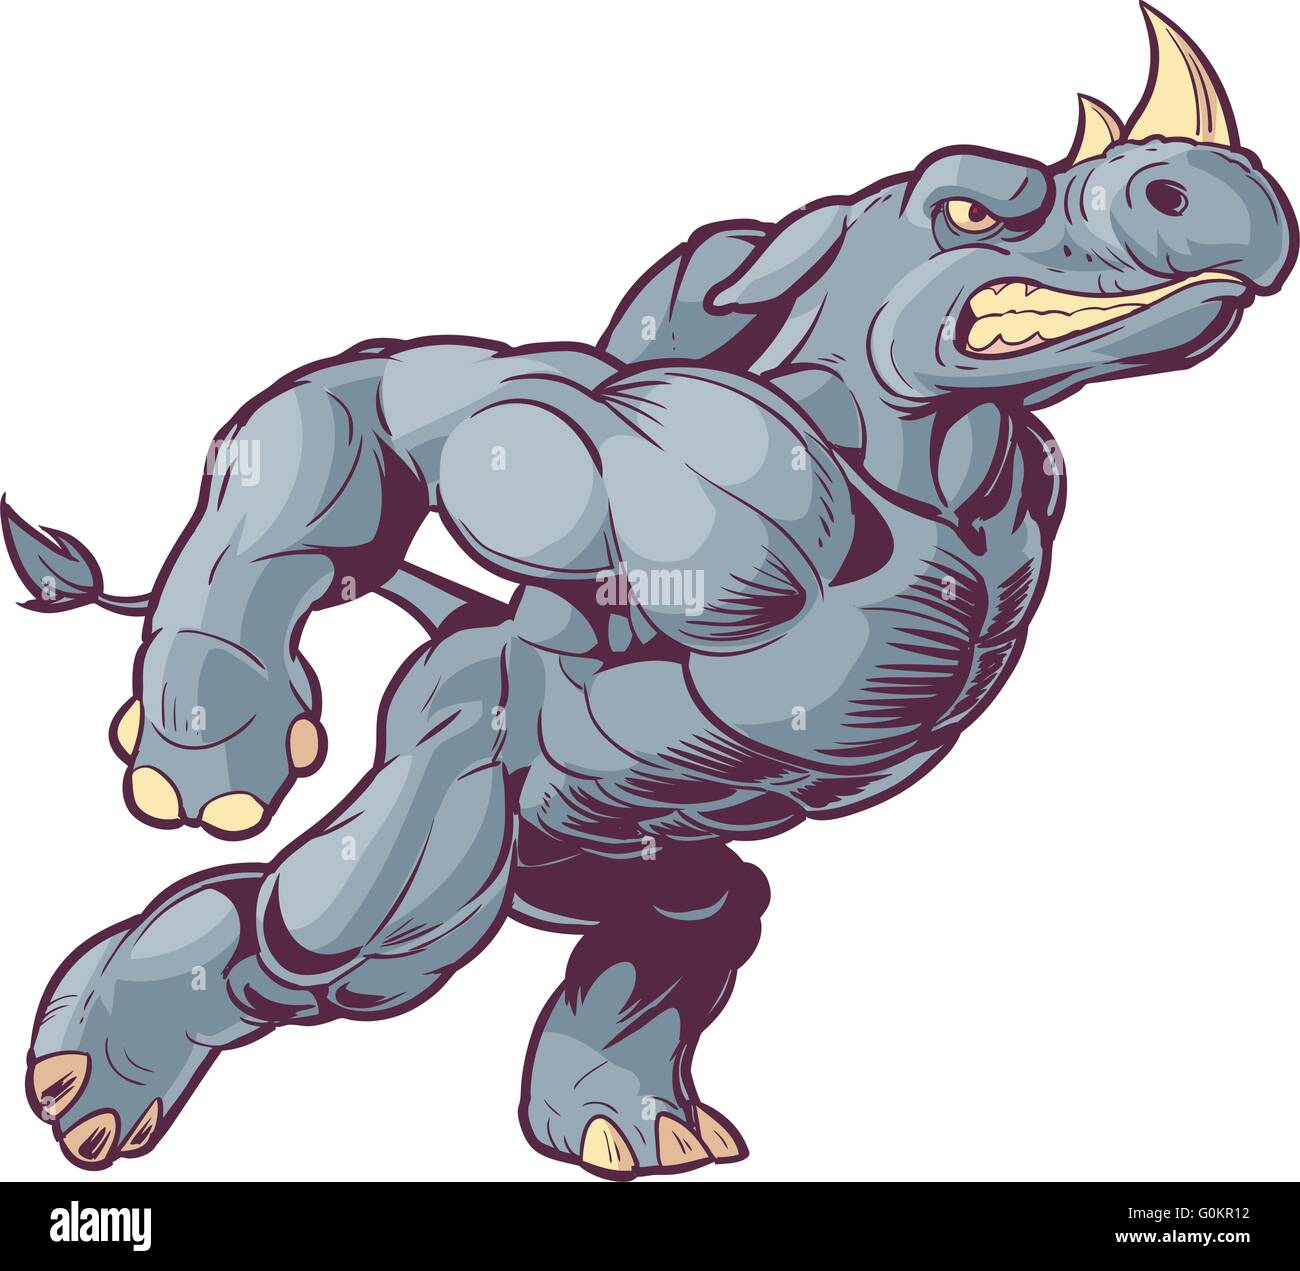 Vector Cartoon Clip Art Illustration of an Anthropomorphic Mascot Rhino Charging to the Right - Stock Image